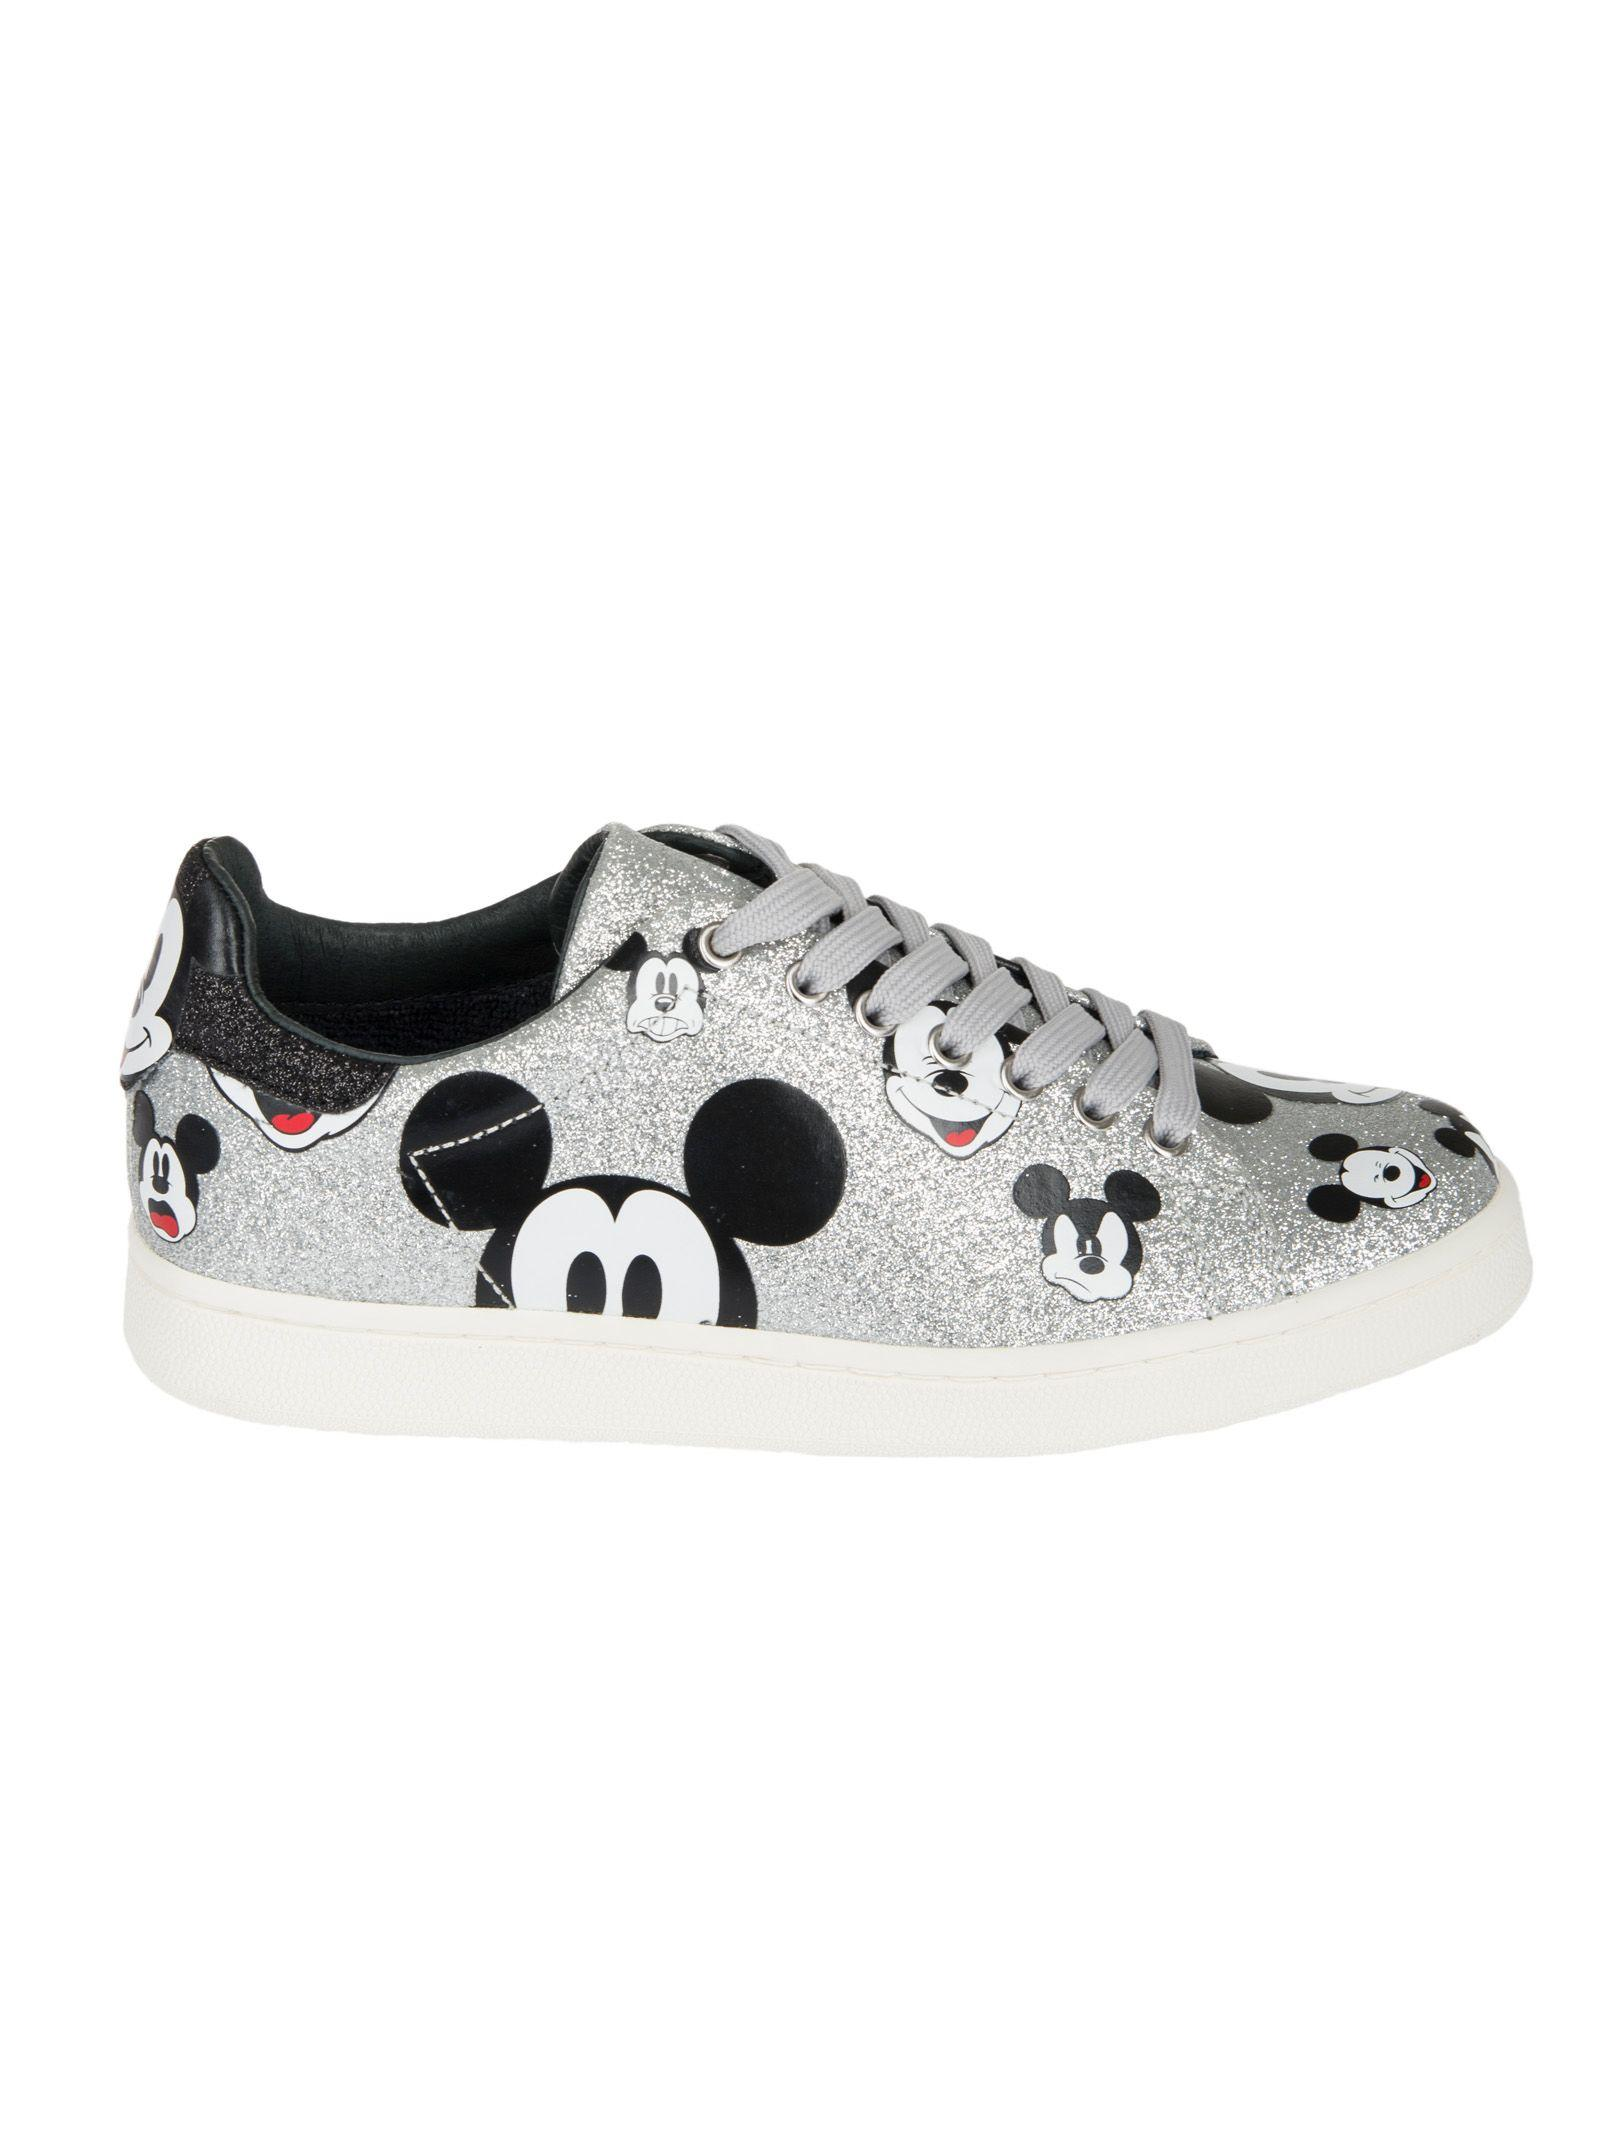 Moa Usa Moa Master Of Arts Micky Printed Sneakers In Silver